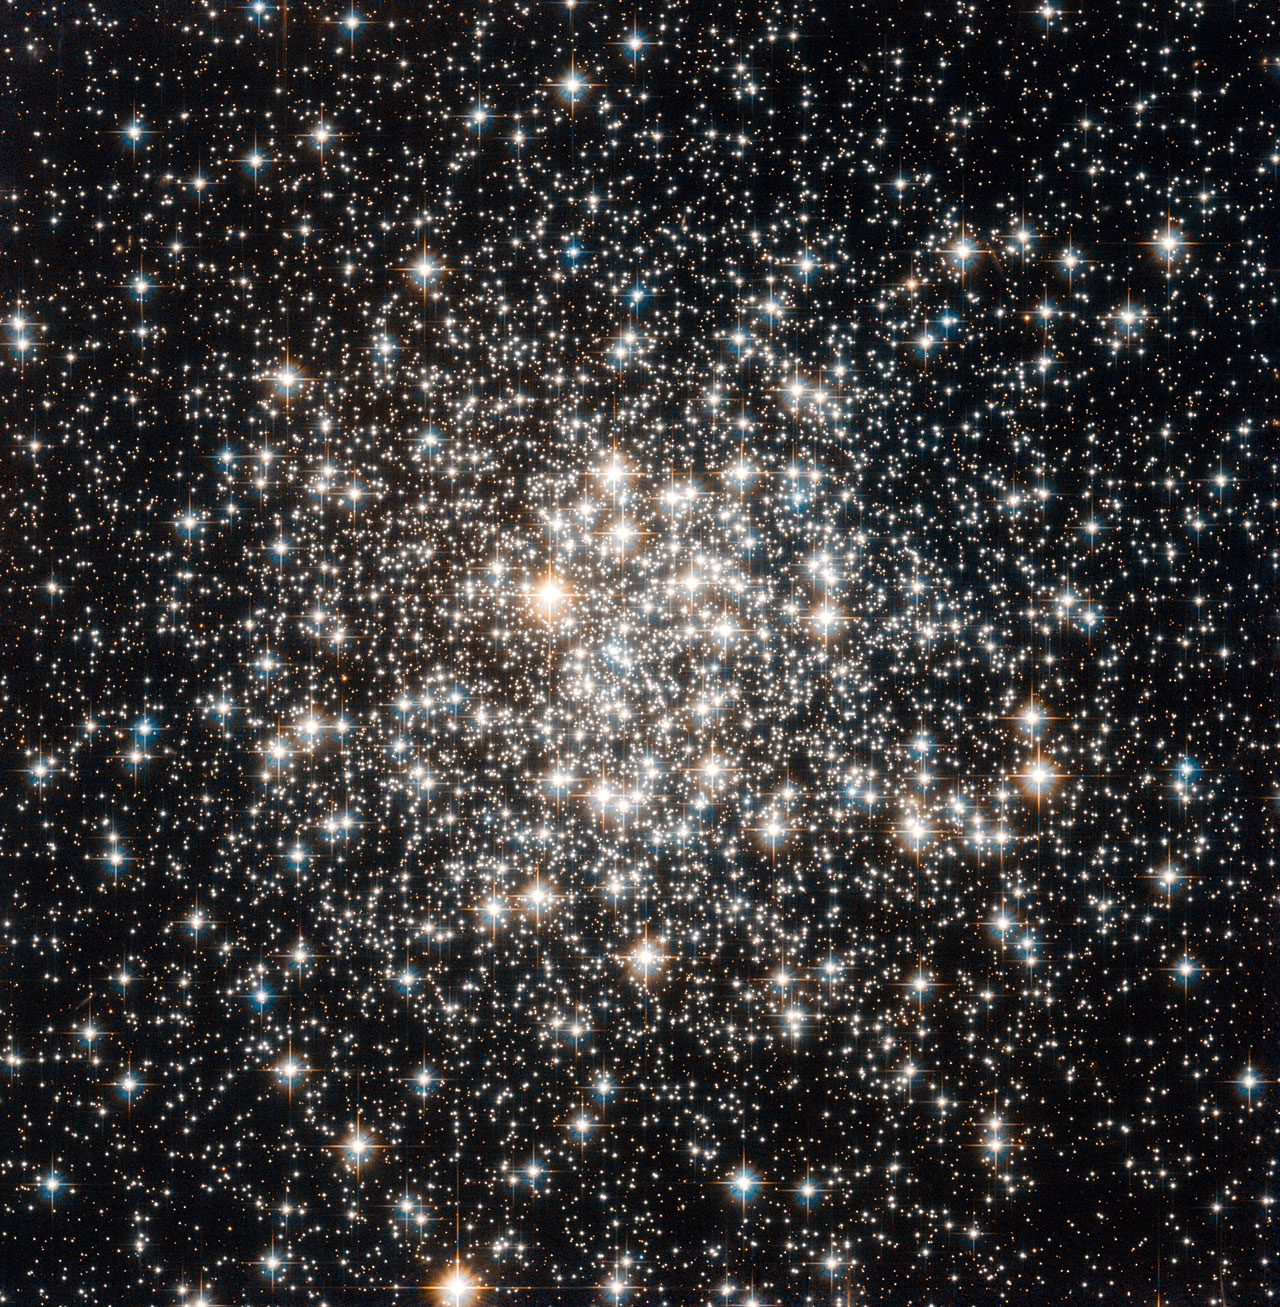 Star Pictures cluster near milky way